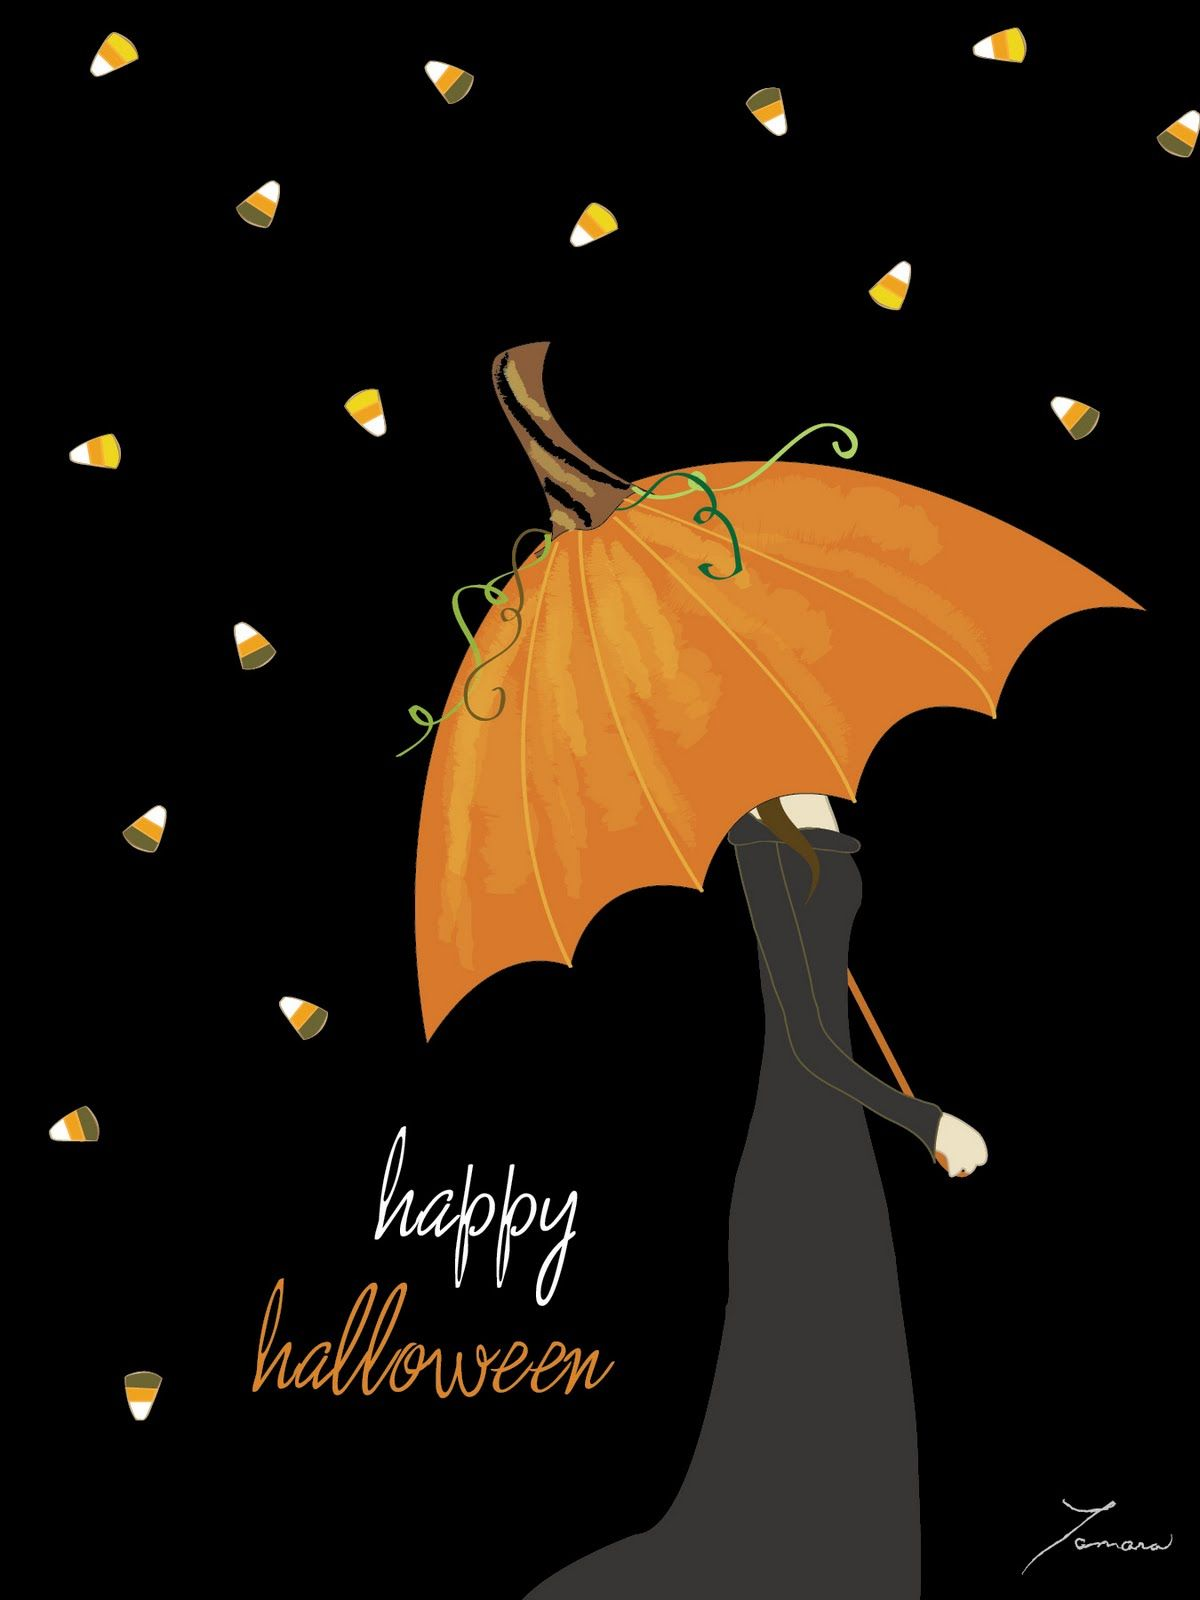 https://www.google.com/search?q=HALLOWEEN UMBRELLA